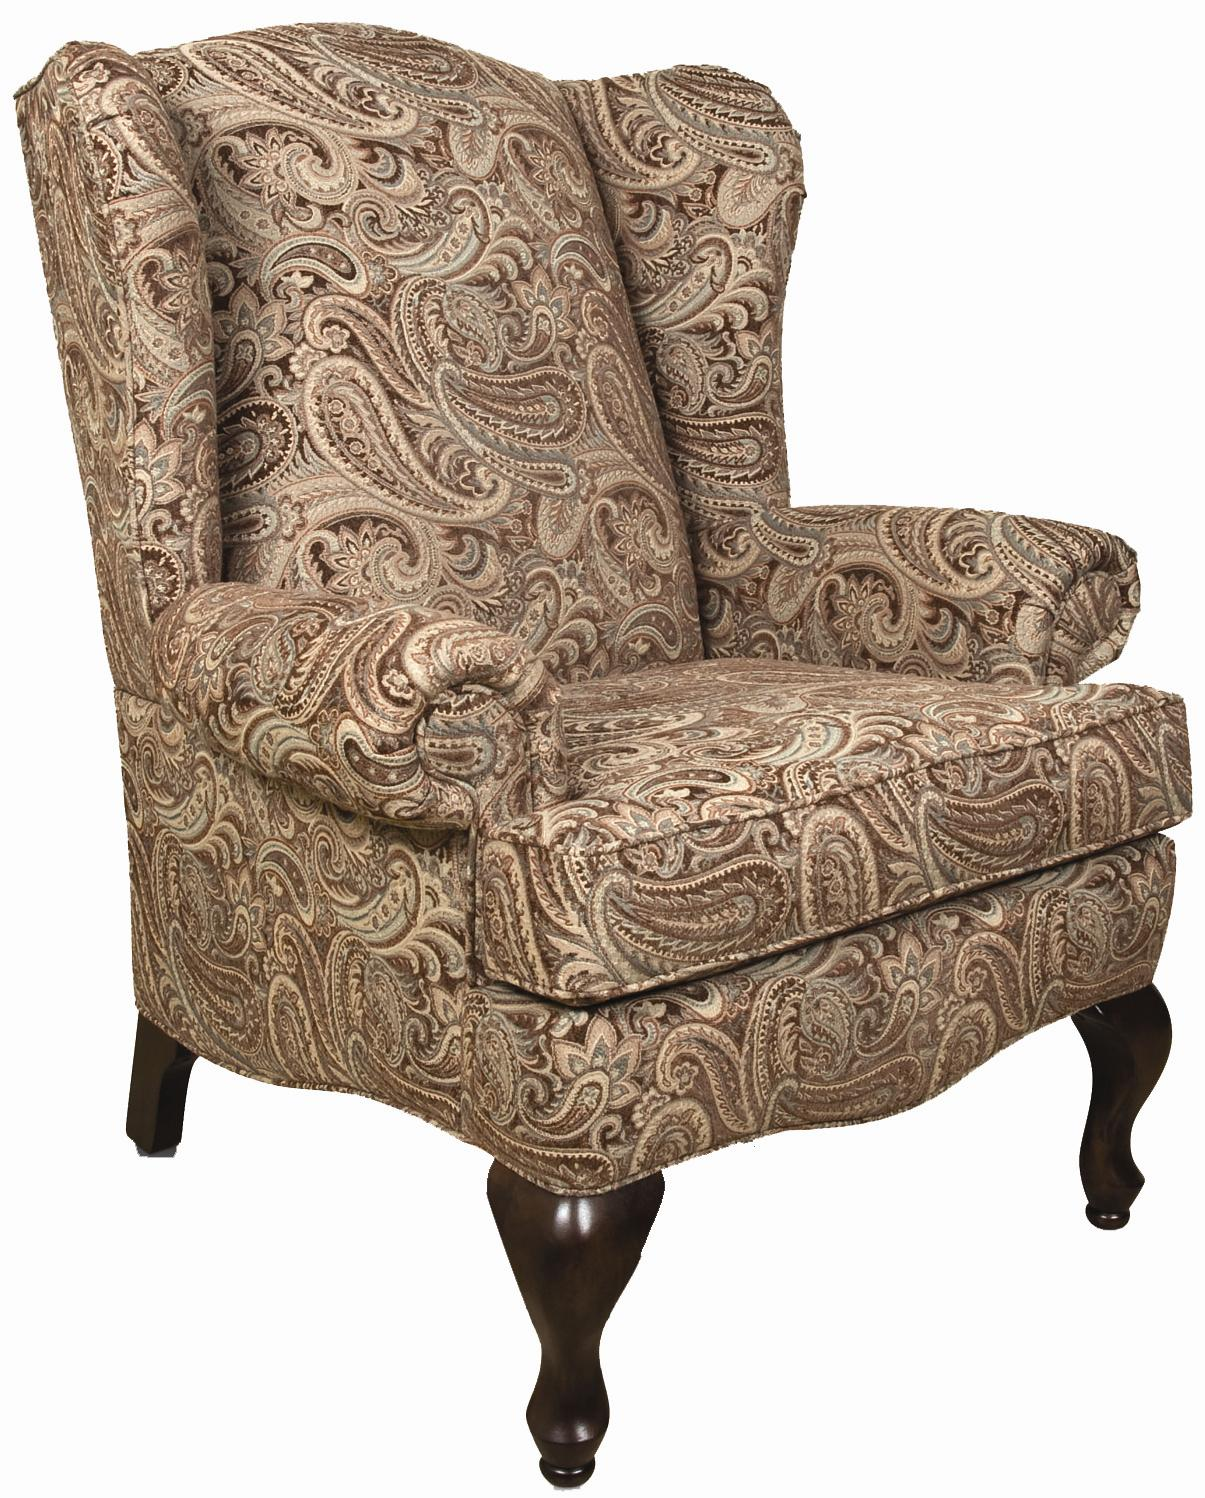 England Colleen Chair  - Item Number: 1334